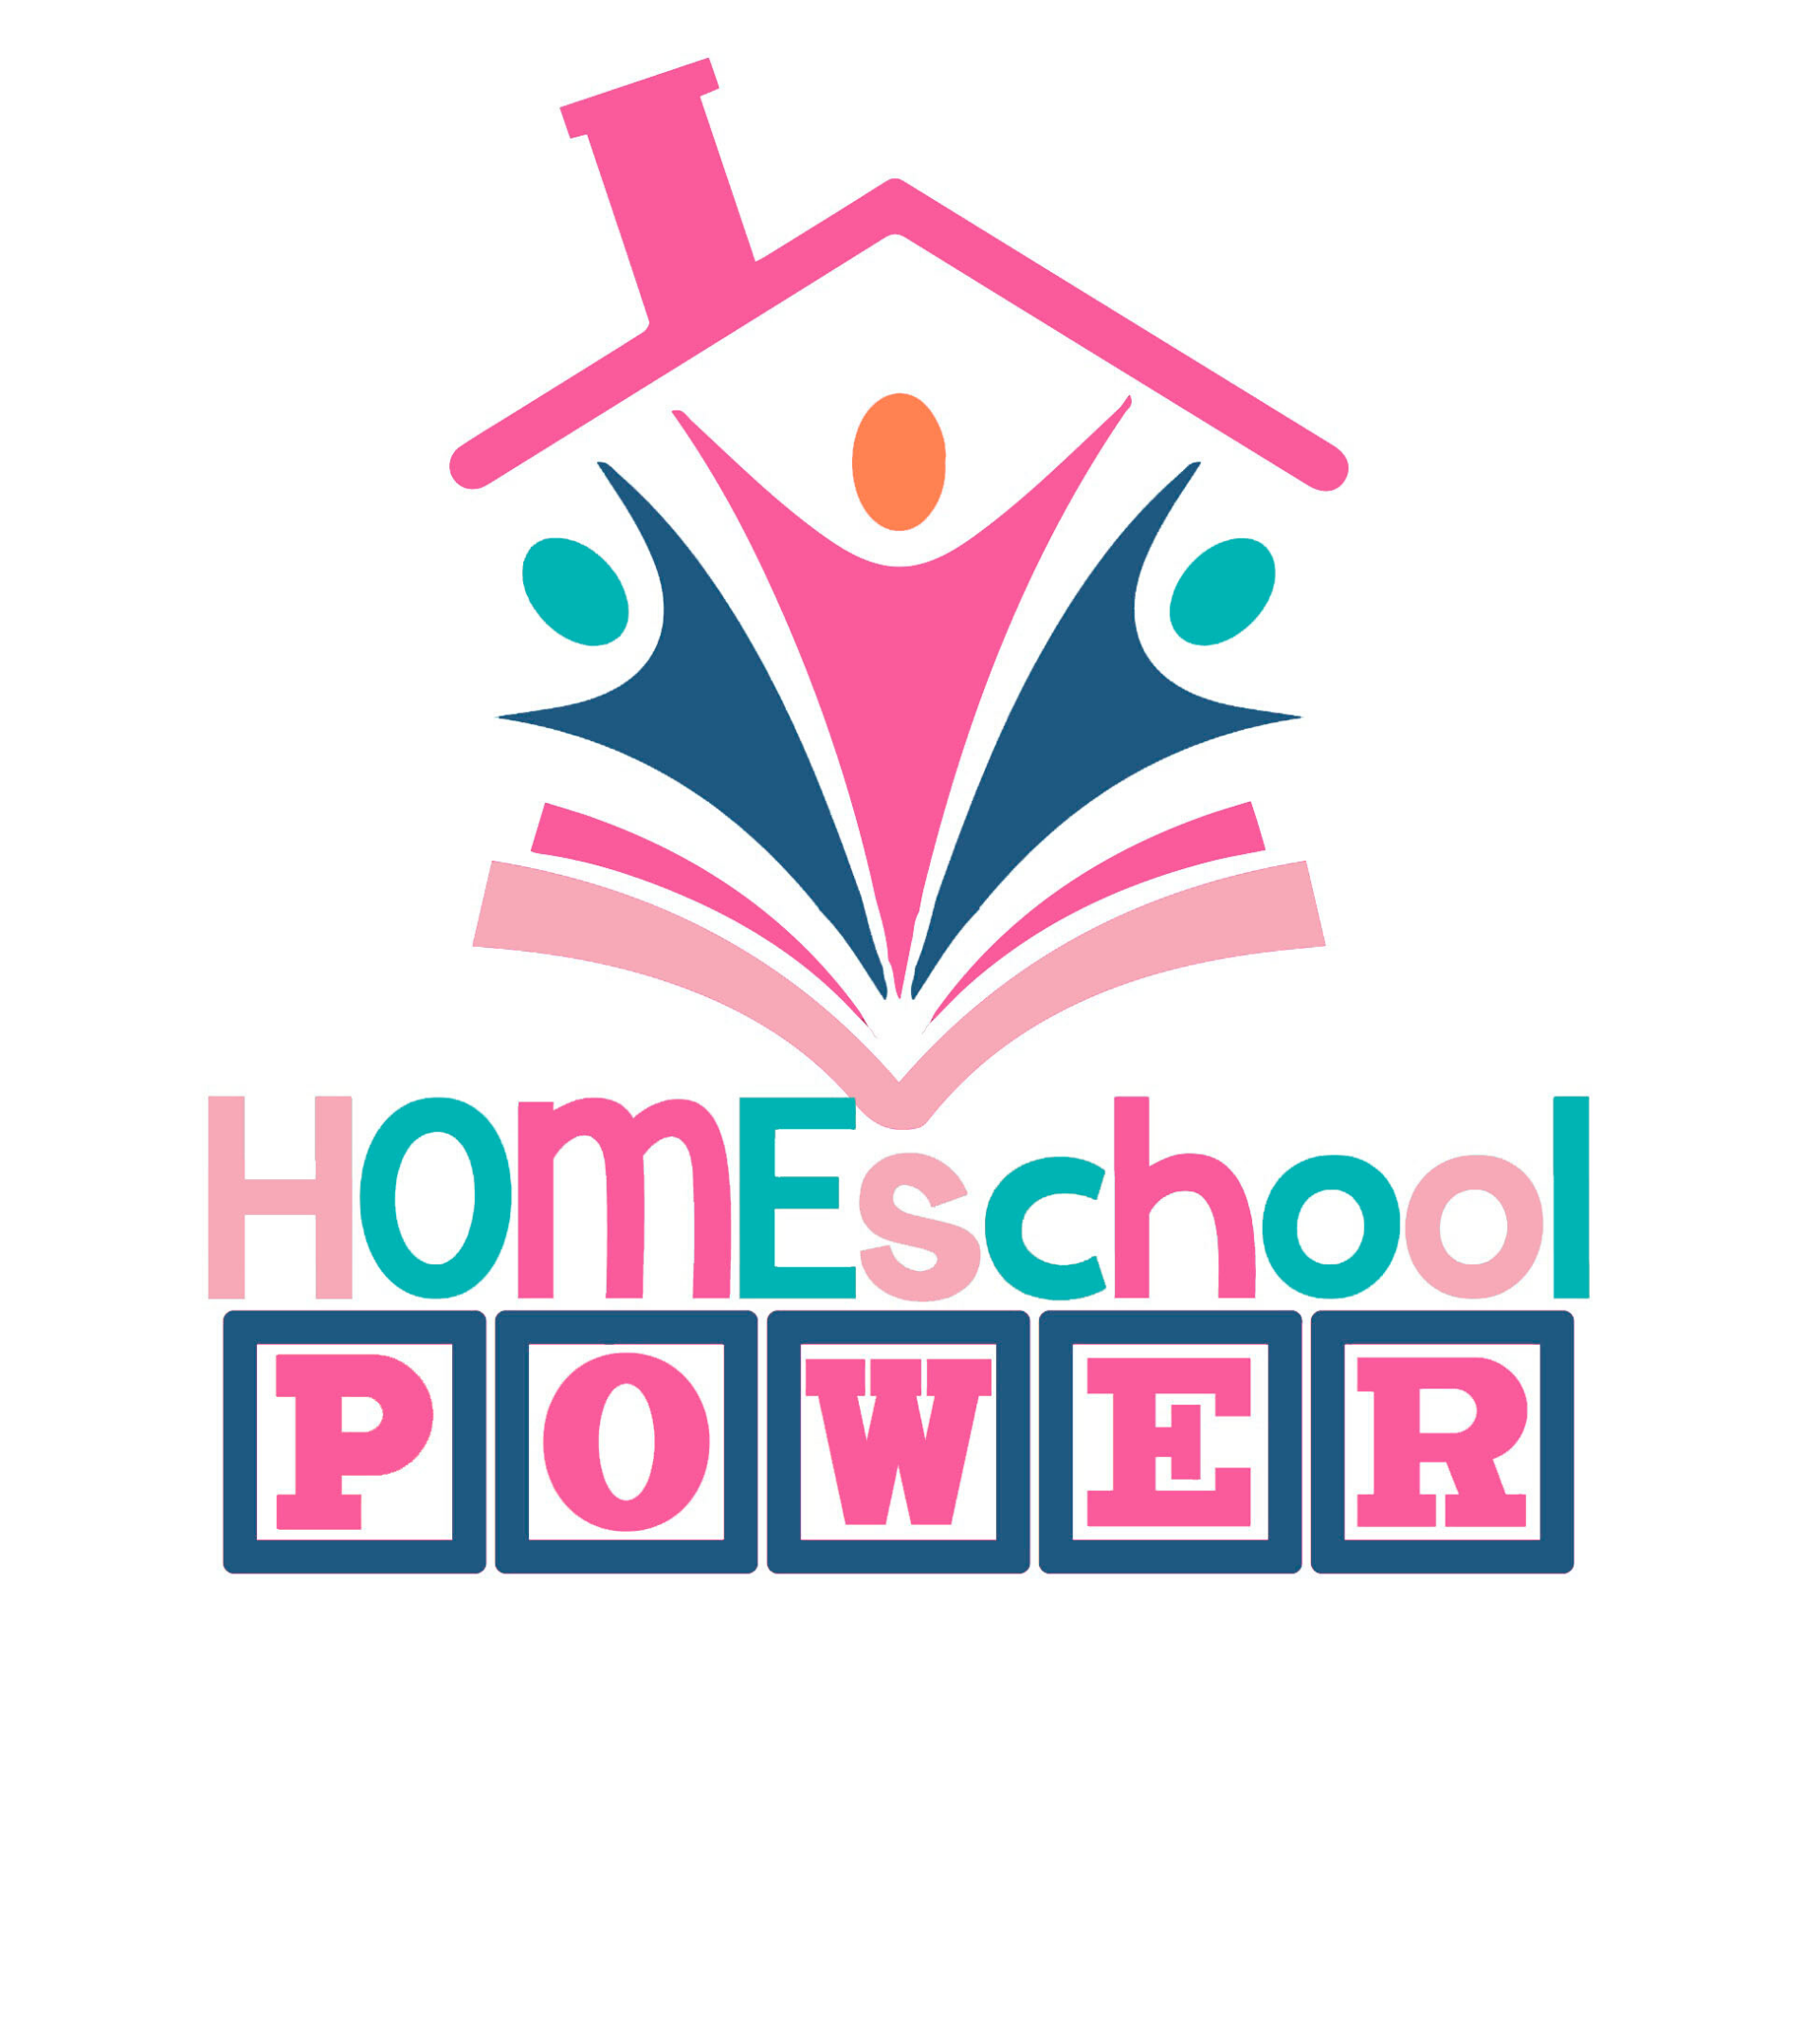 Homeschool Power